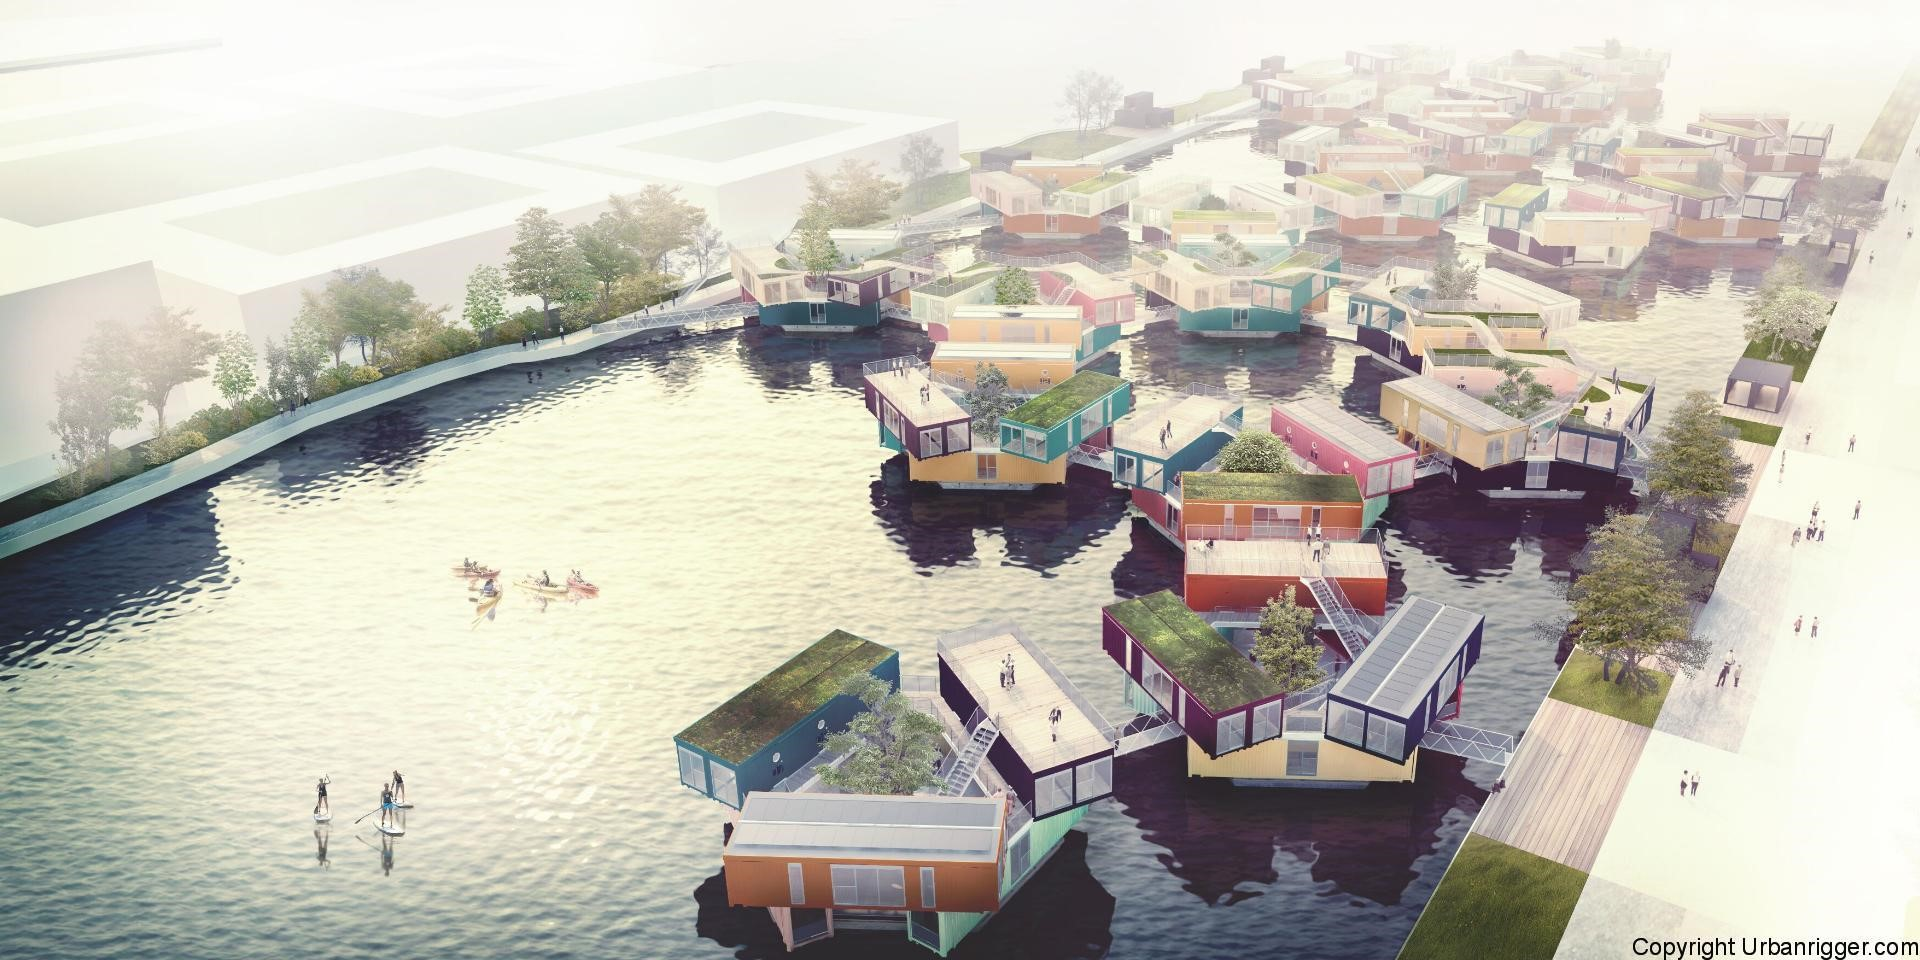 An artist's rendering of multiple Urban Rigger units linked in a canal. The company has deployed a single such unit in Copenhagen.